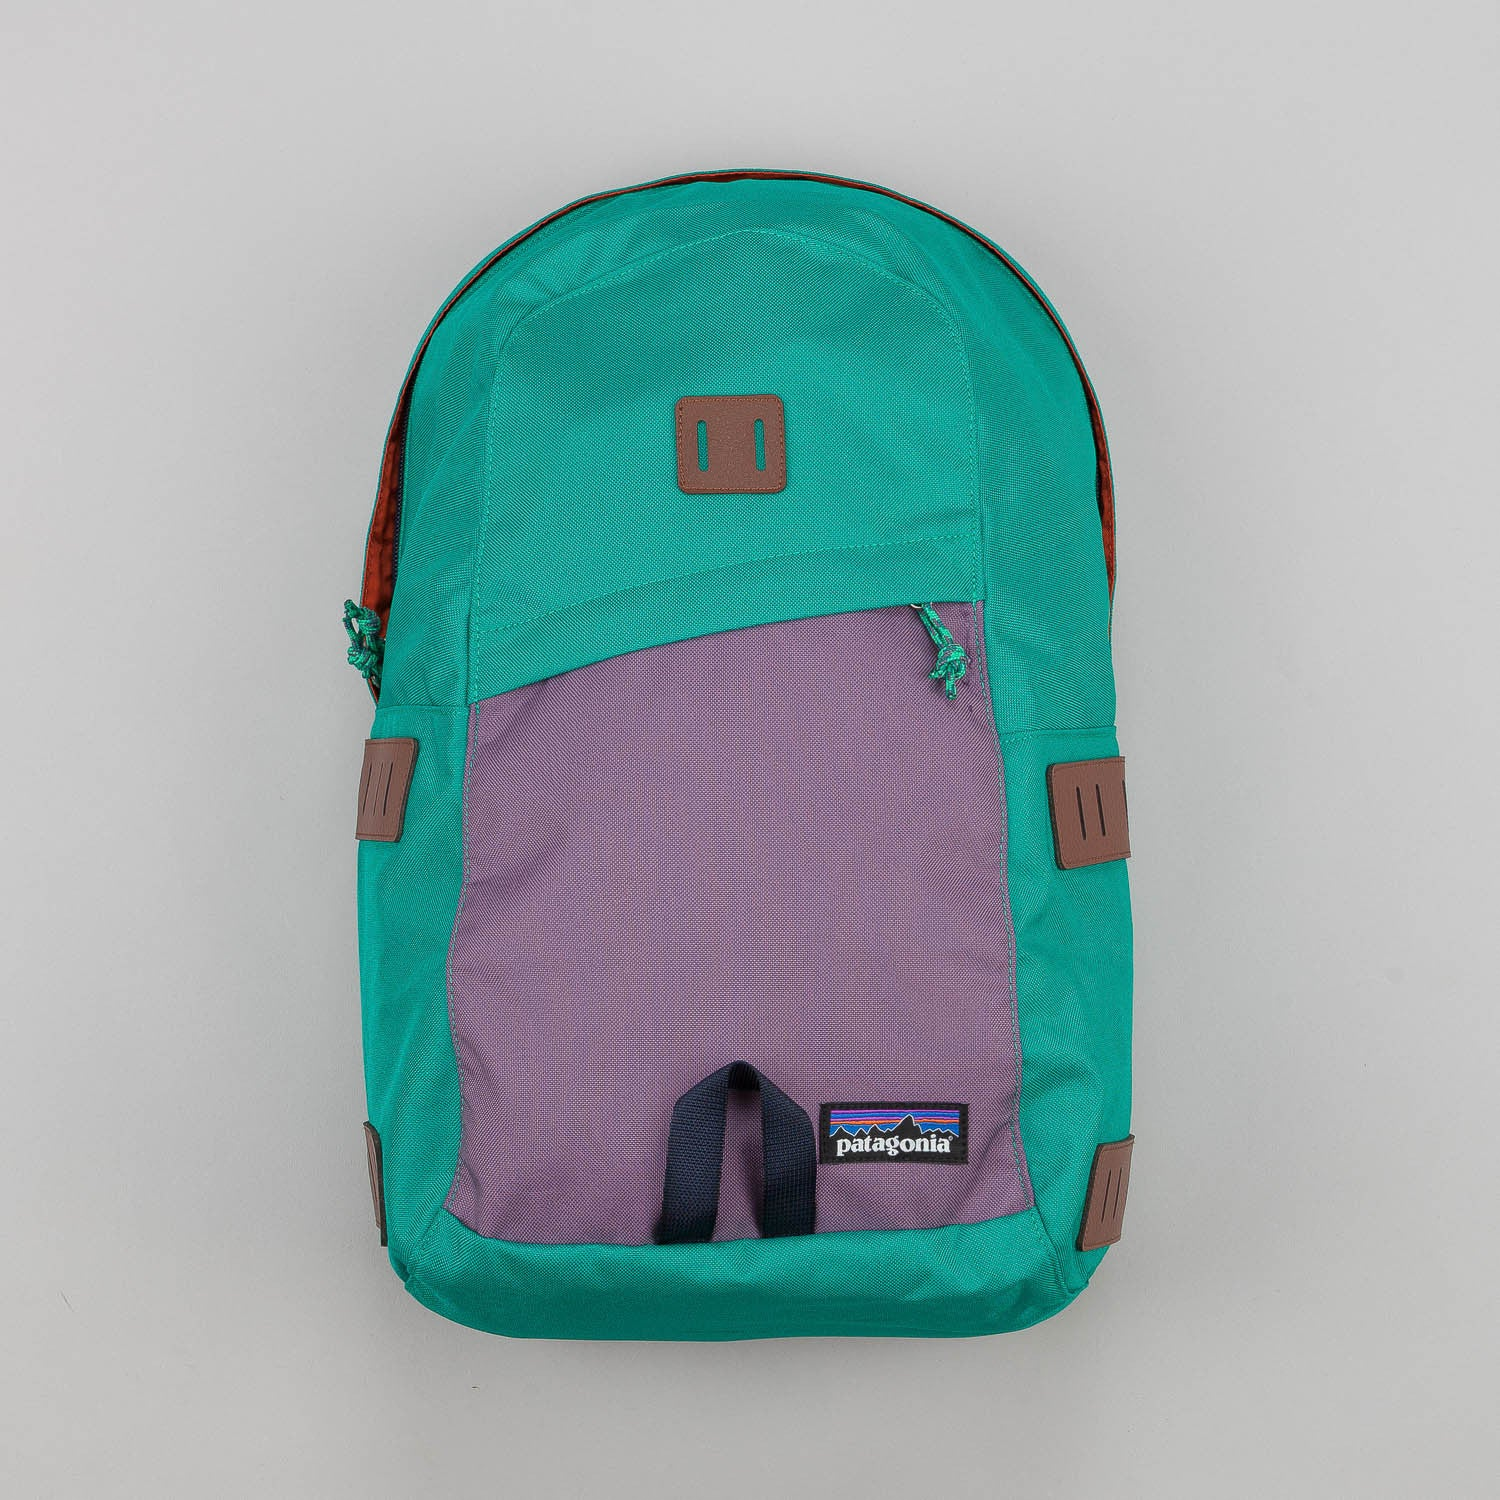 Patagonia Ironwood Backpack